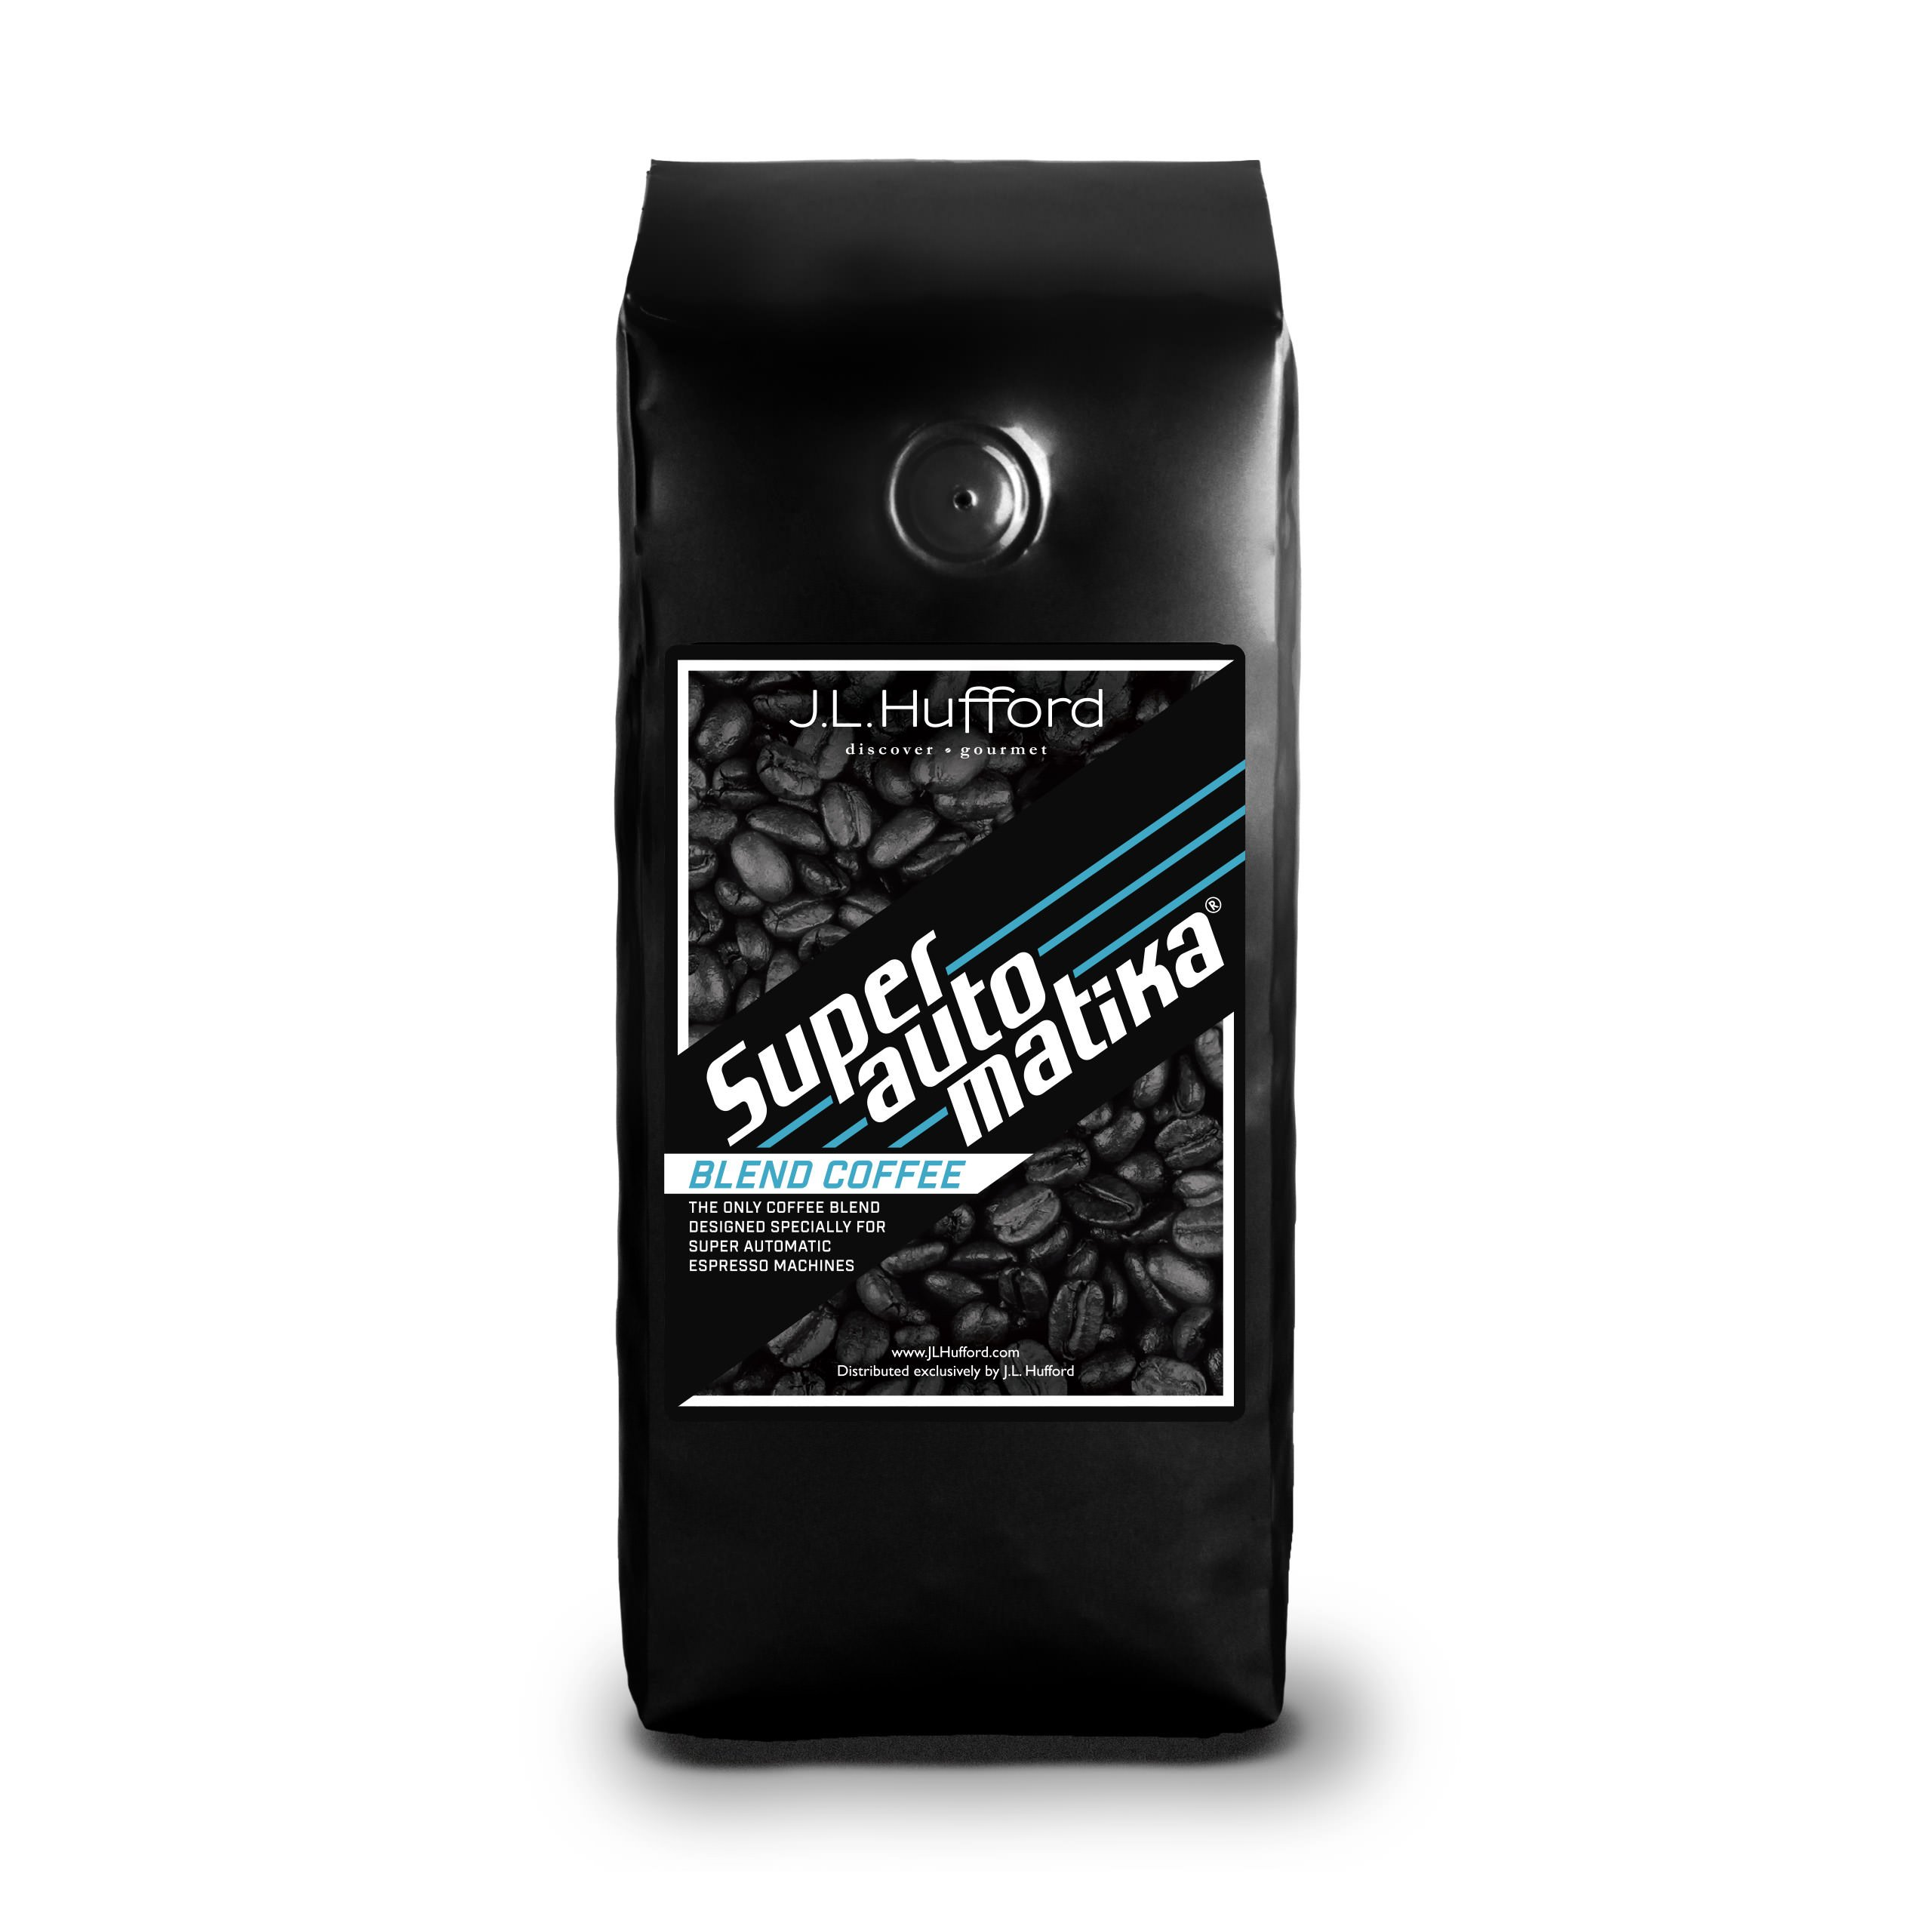 Superautomatika Blend Coffee for Automatic and Super Automatic Espresso Machines and Coffee Machines (1lb)